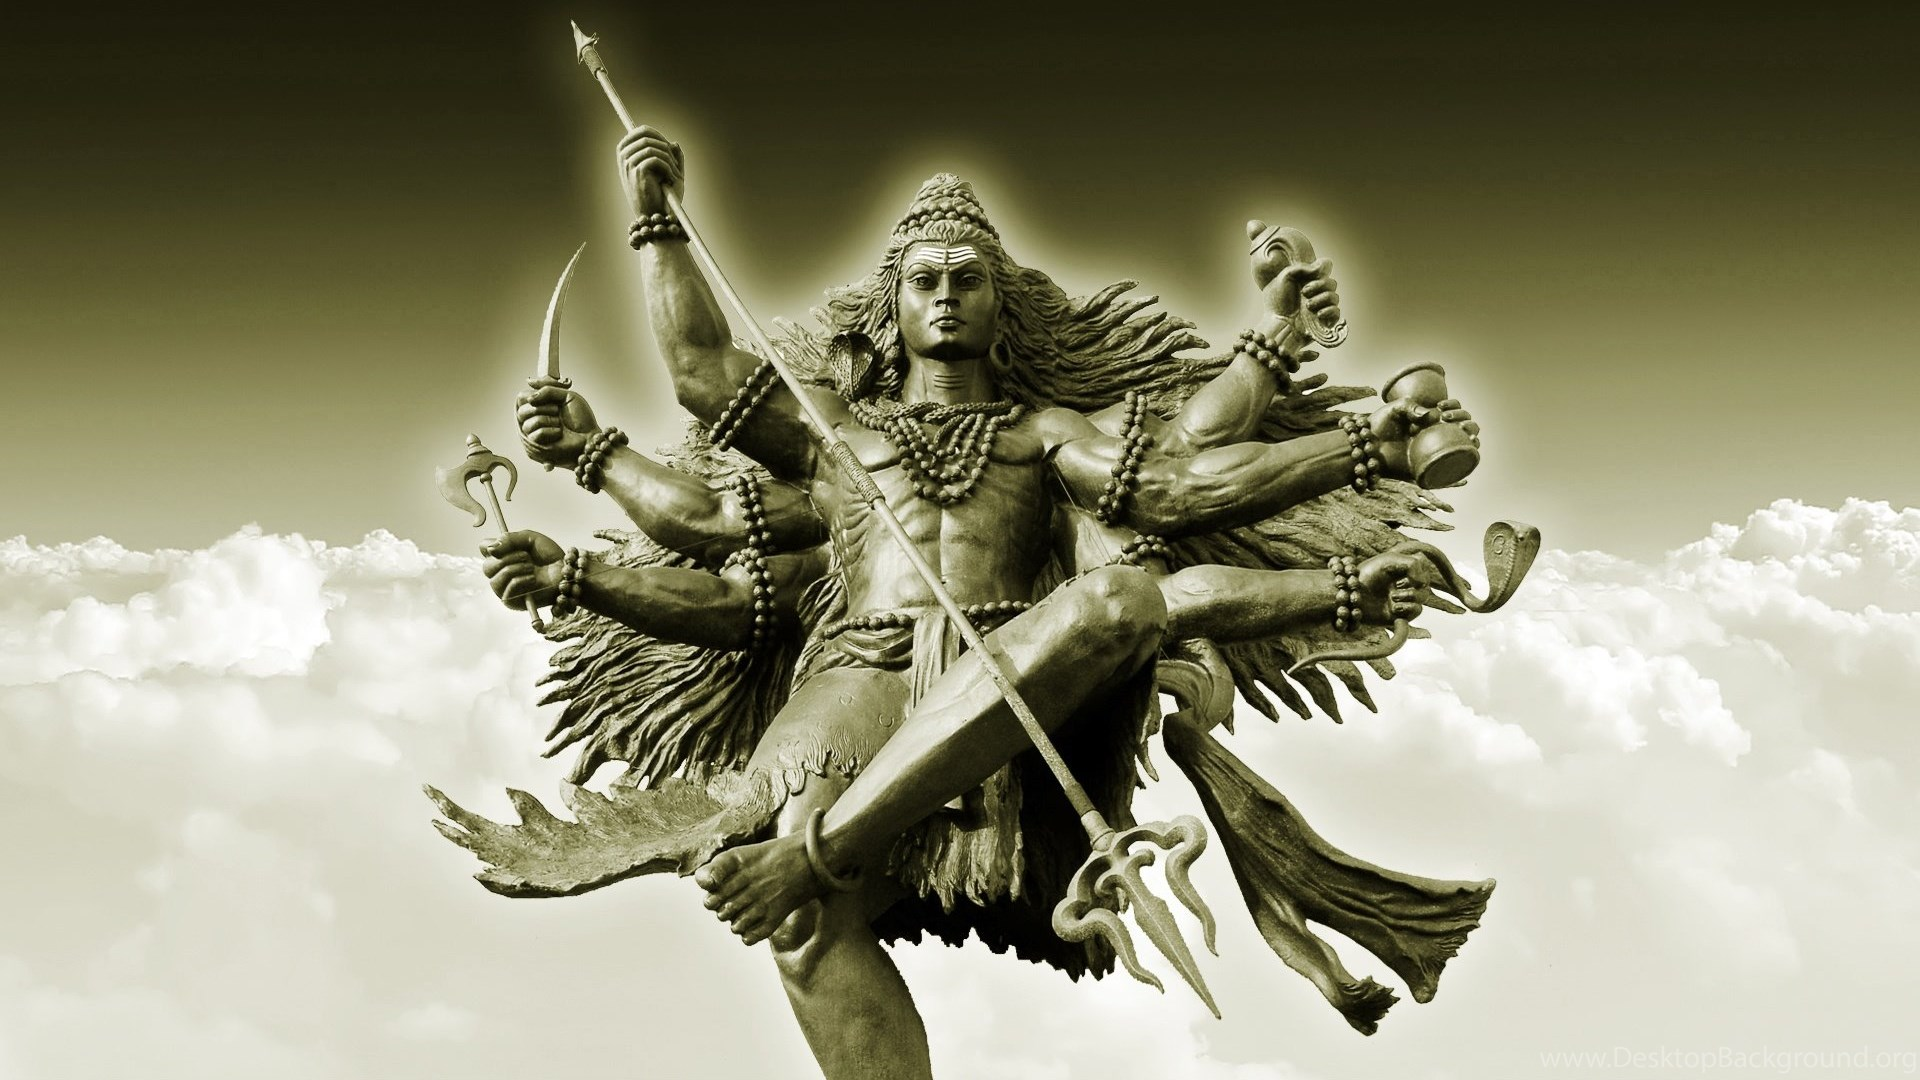 Wallpapers Lord Shiva Angry Photos Hd Kaal Bhairav  4